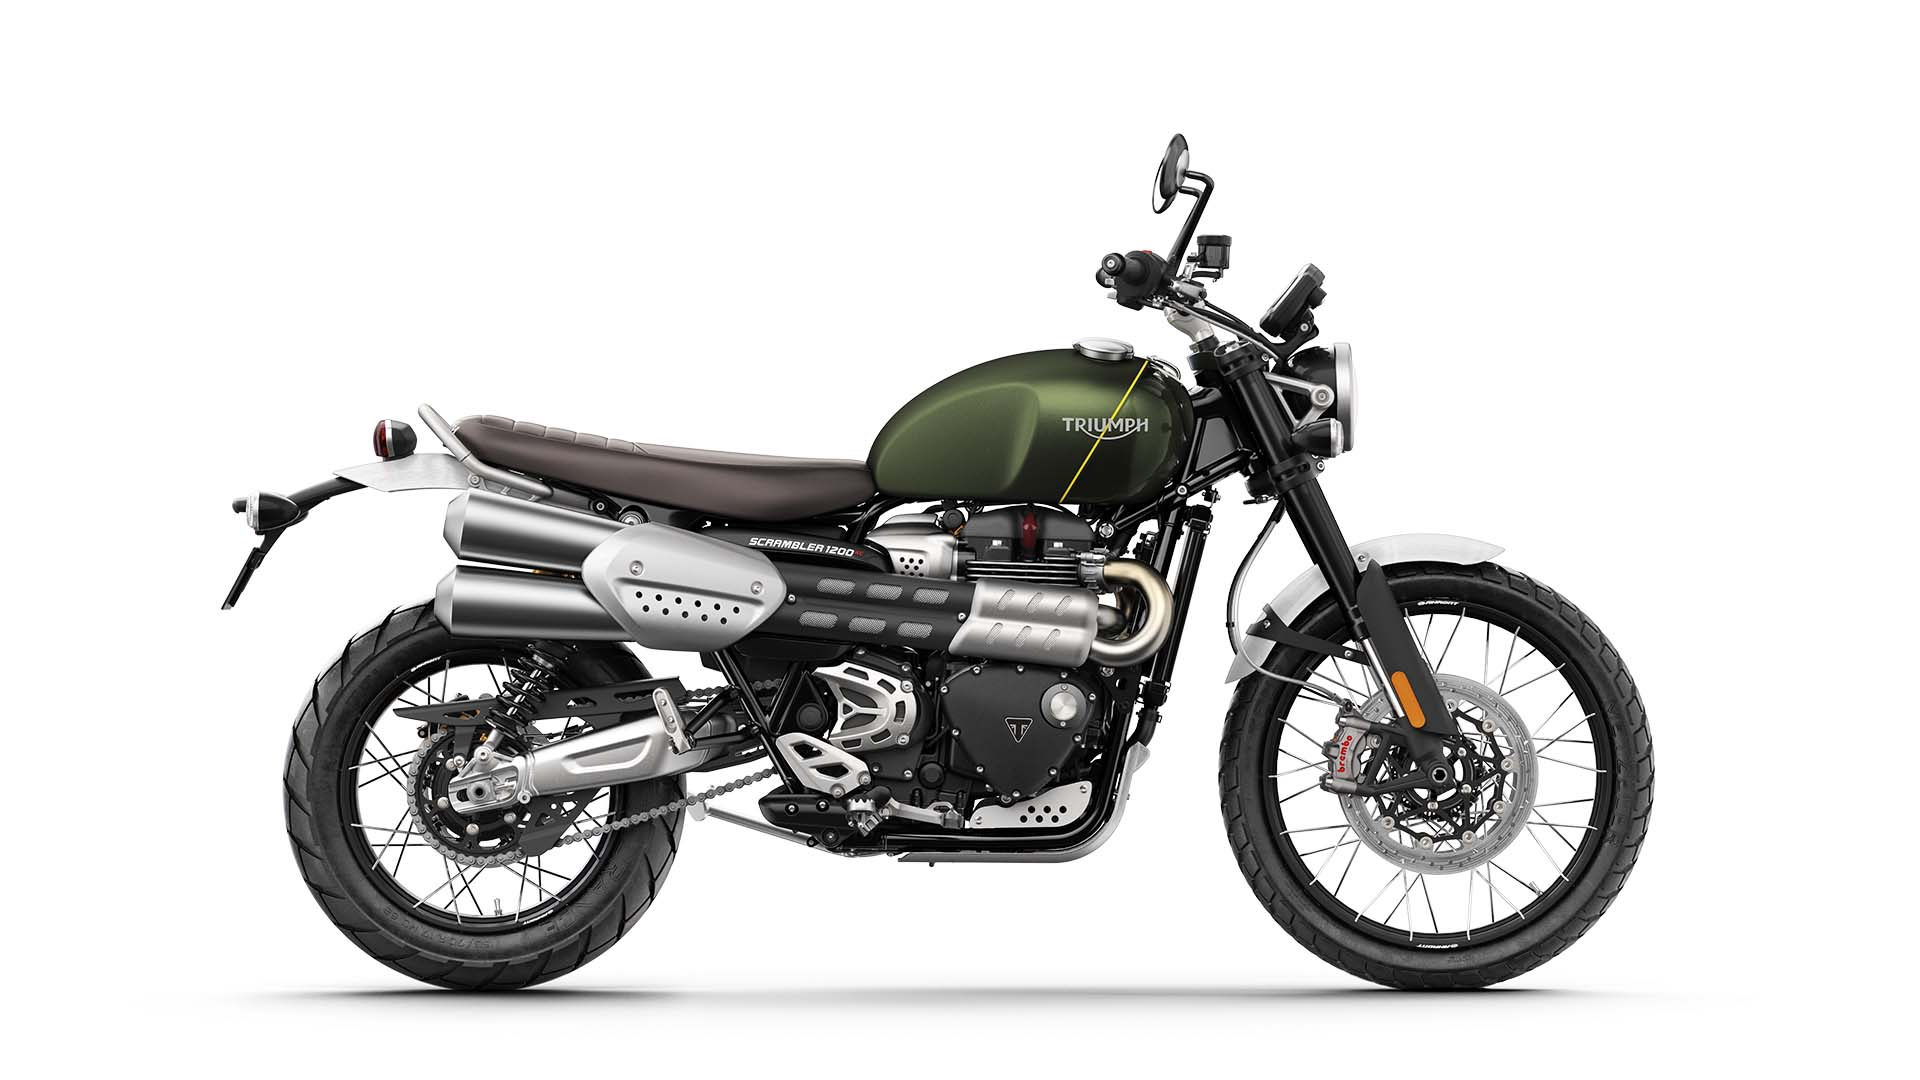 Triumph Scrambler 1200 XC Side Shot